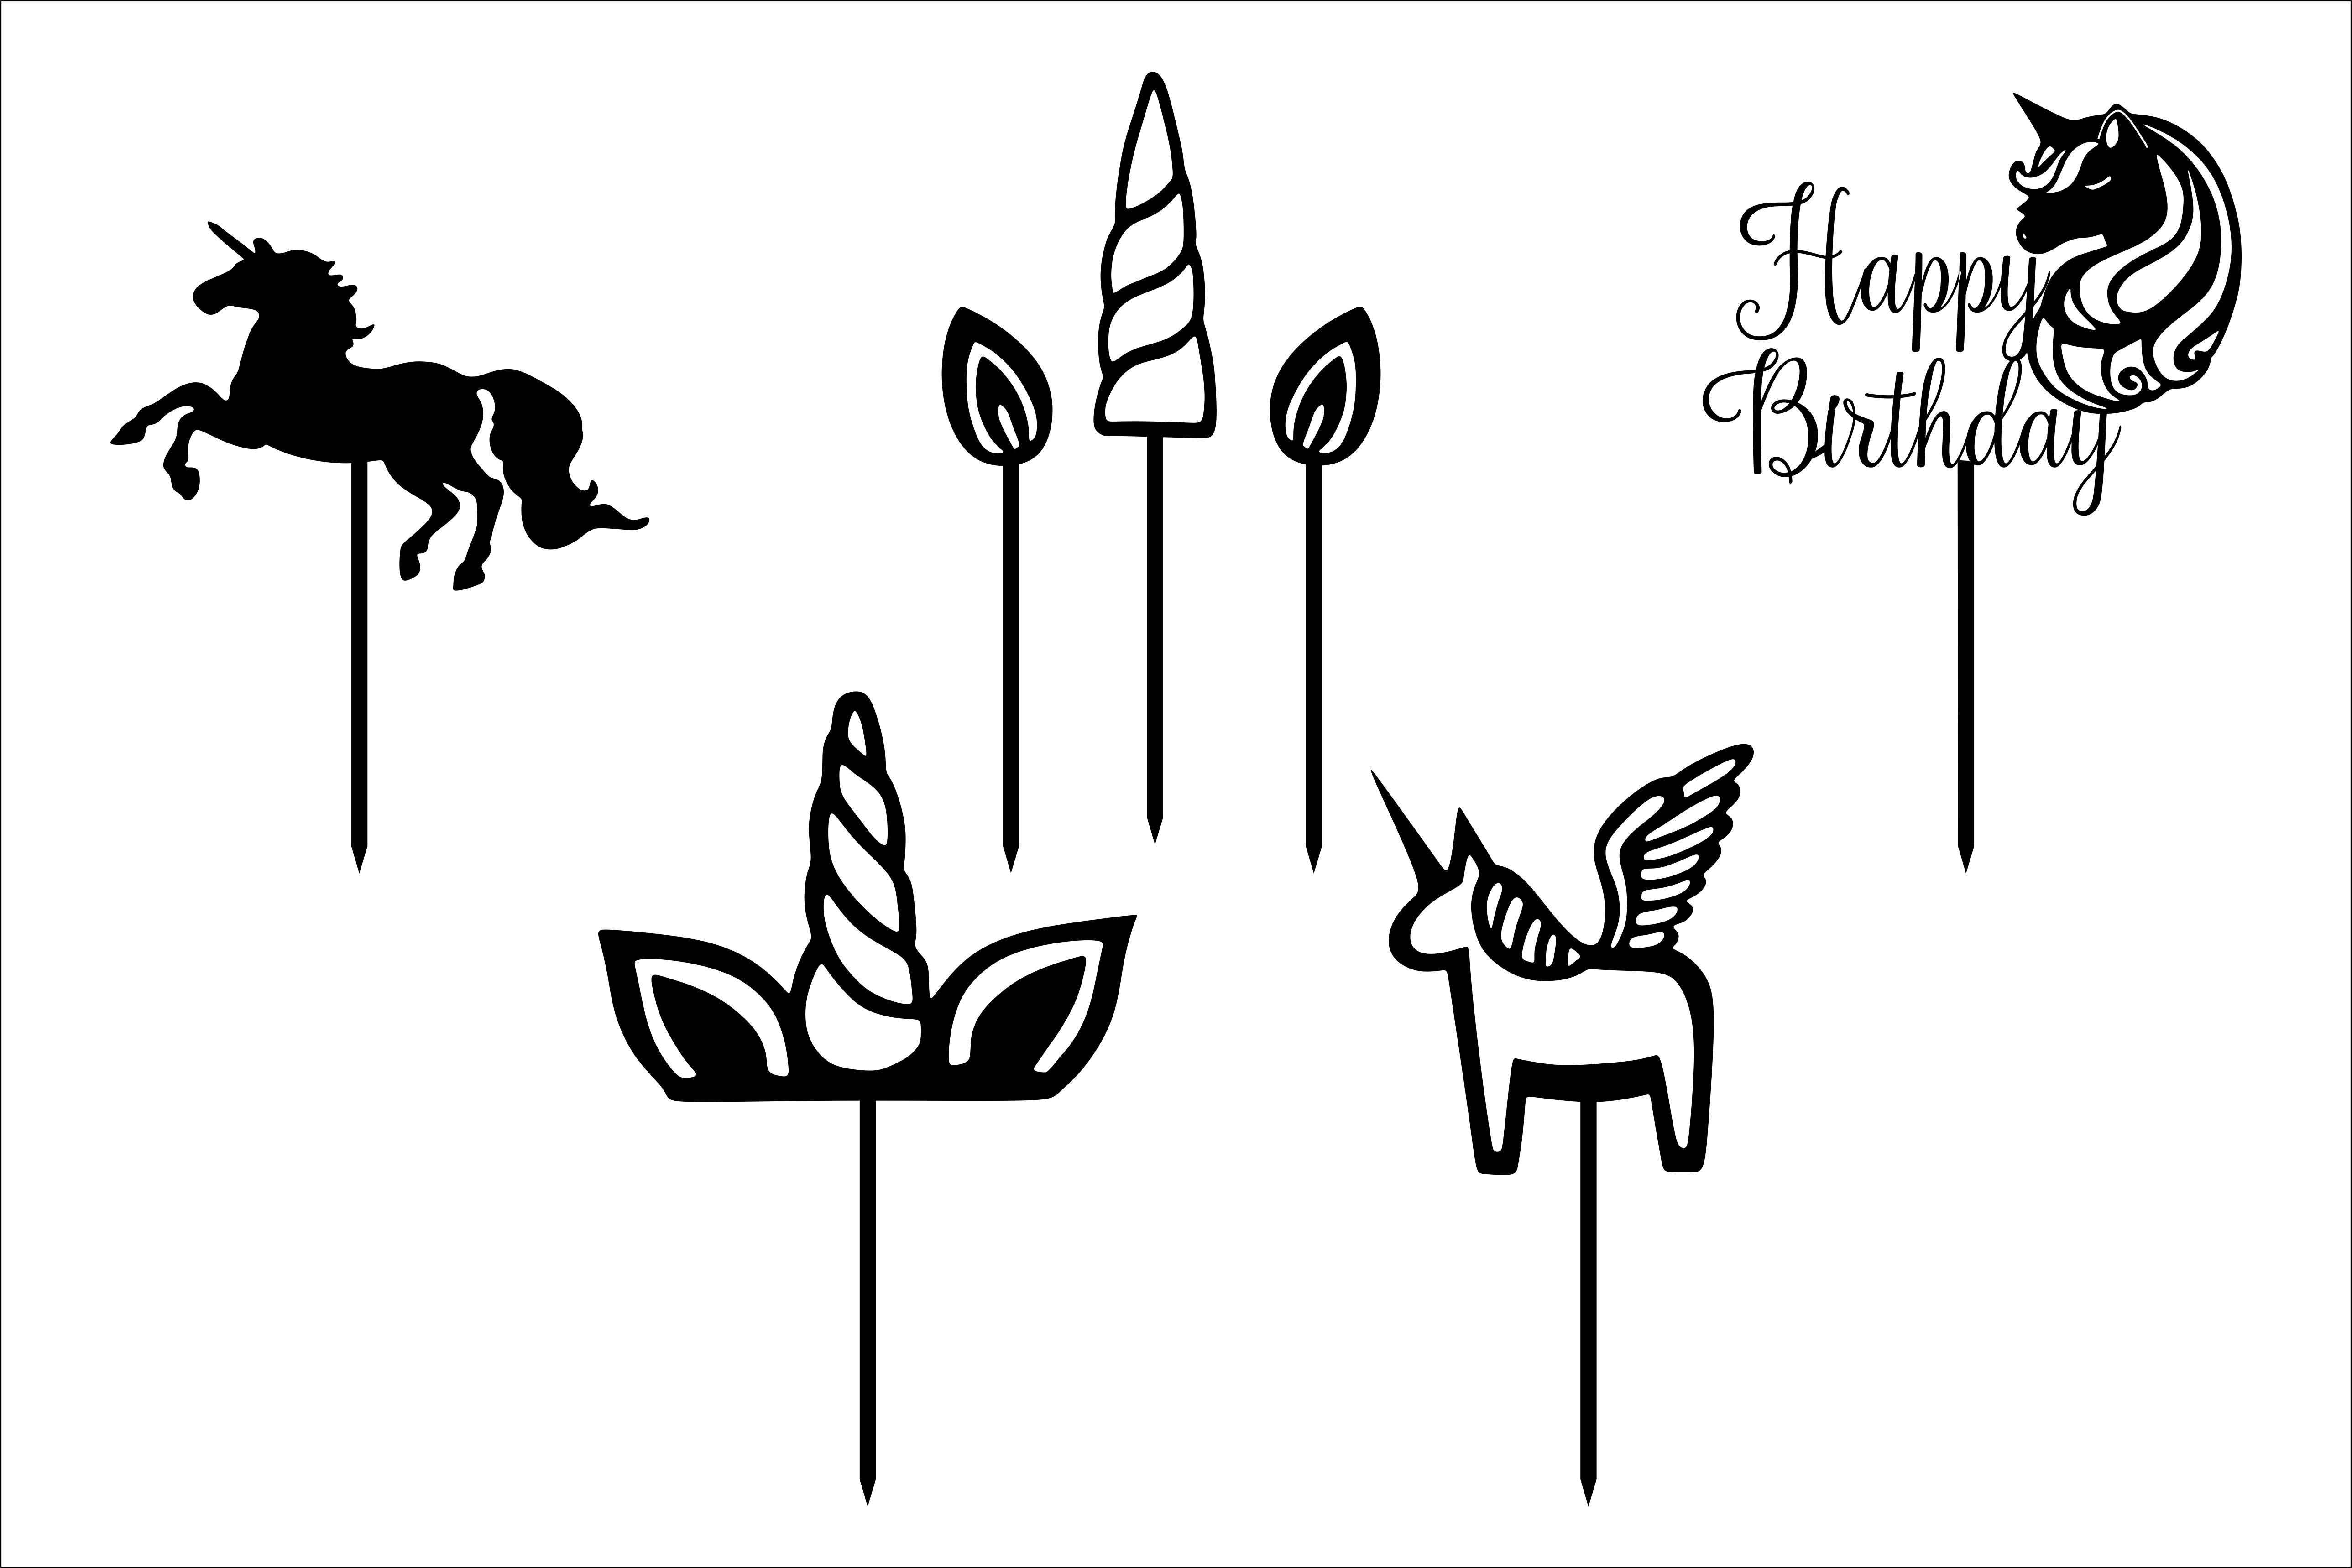 Download Free Unicorn Cake Topper Cut Files Graphic By Fast Store Creative Fabrica for Cricut Explore, Silhouette and other cutting machines.